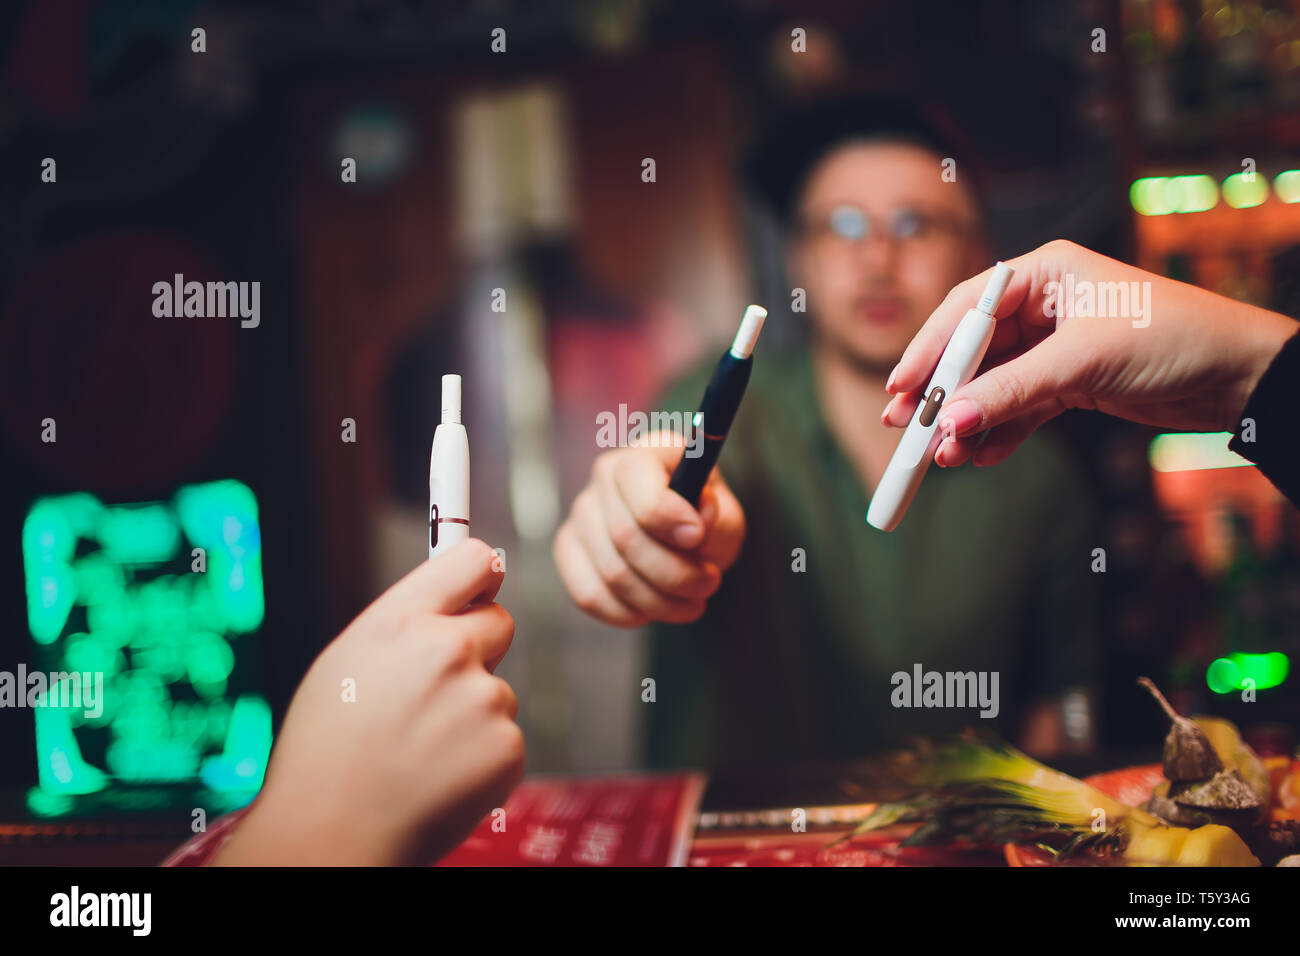 IQOS heat-not-burn tobacco product technology. Woman holding e-cigarette in his hand before smoking. - Stock Image